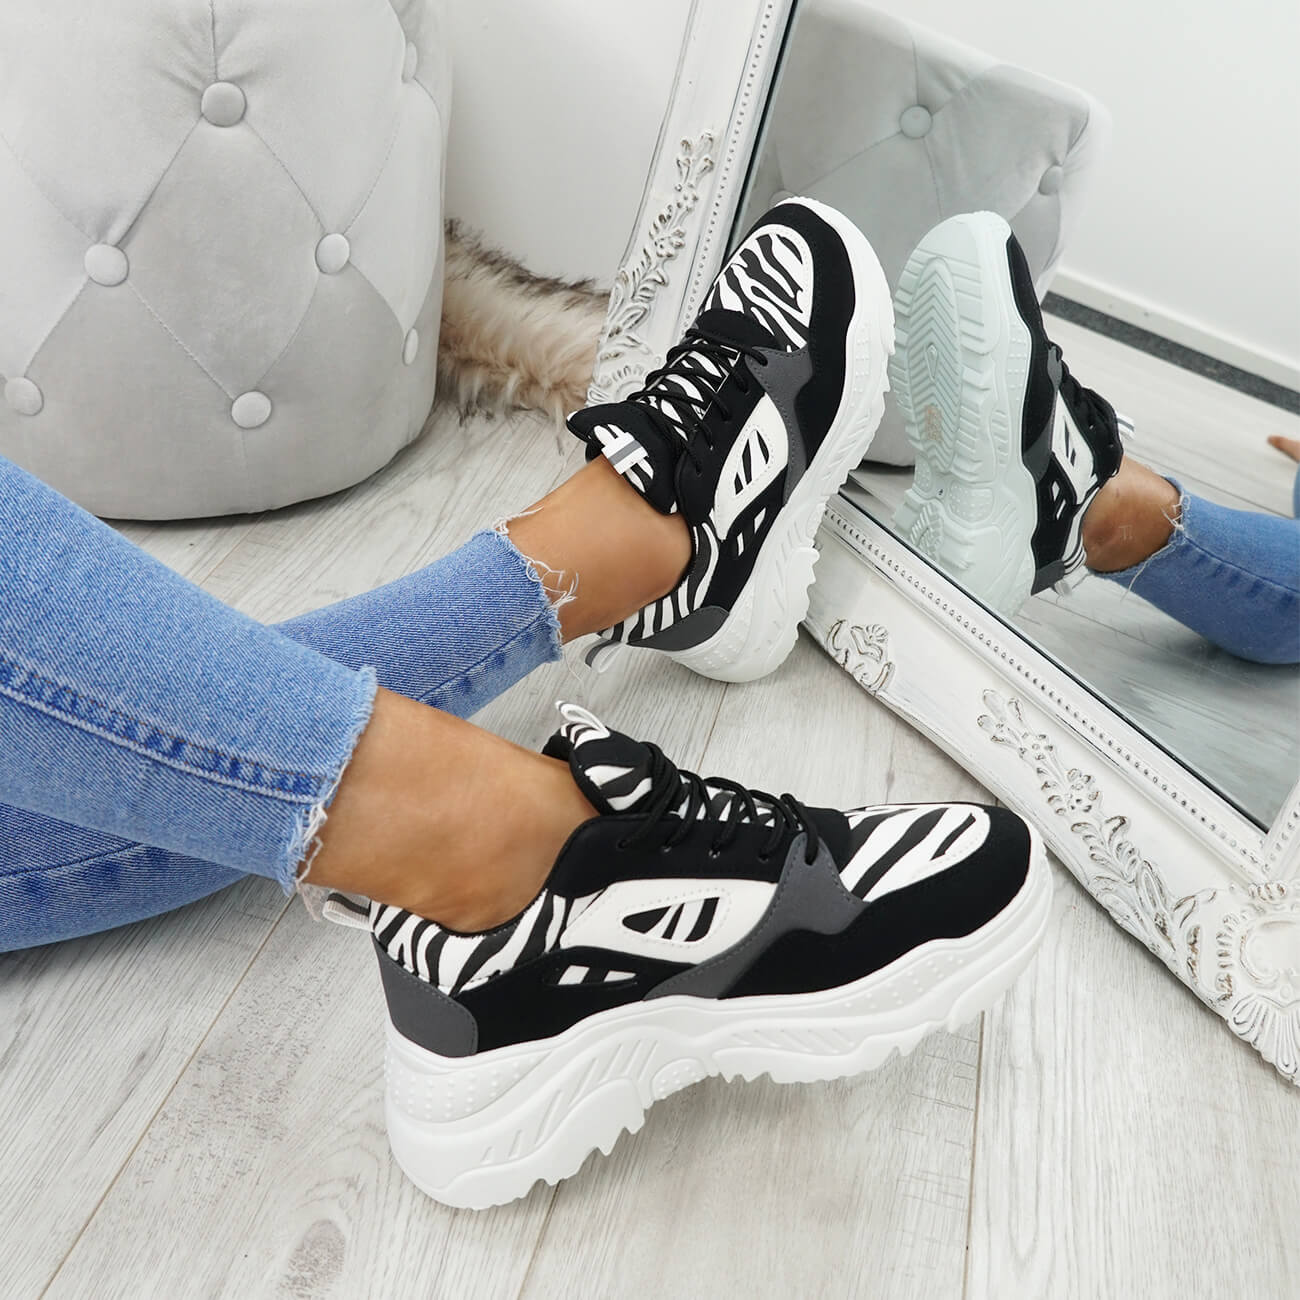 WOMENS-LADIES-LACE-UP-ZEBRA-PATTERN-CHUNKY-TRAINERS-SNEAKERS-PLIMSOLL-SHOES thumbnail 9